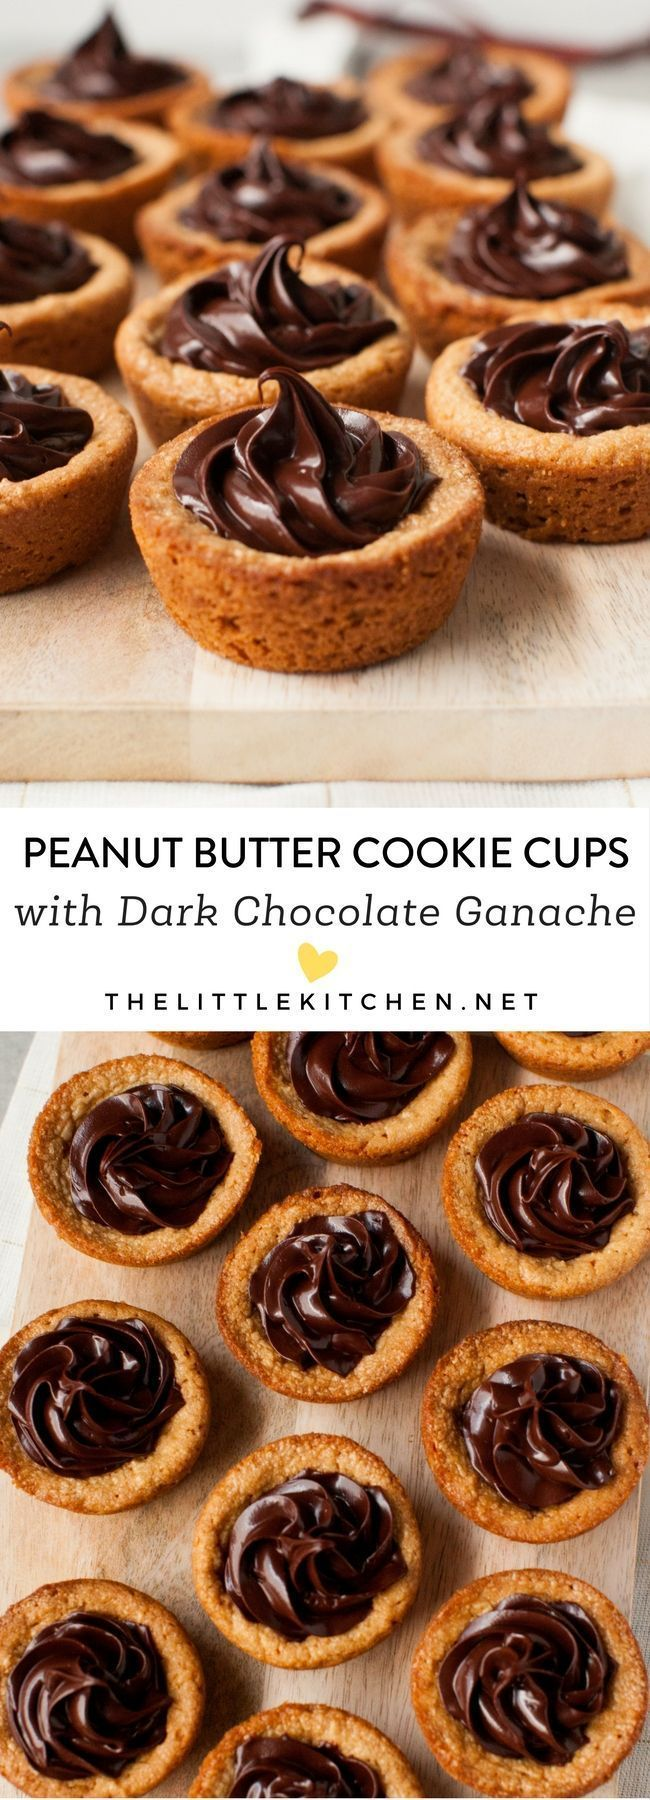 These look delicious, but I think I would mix the chocolate with heavy cream, more like actual ganache.